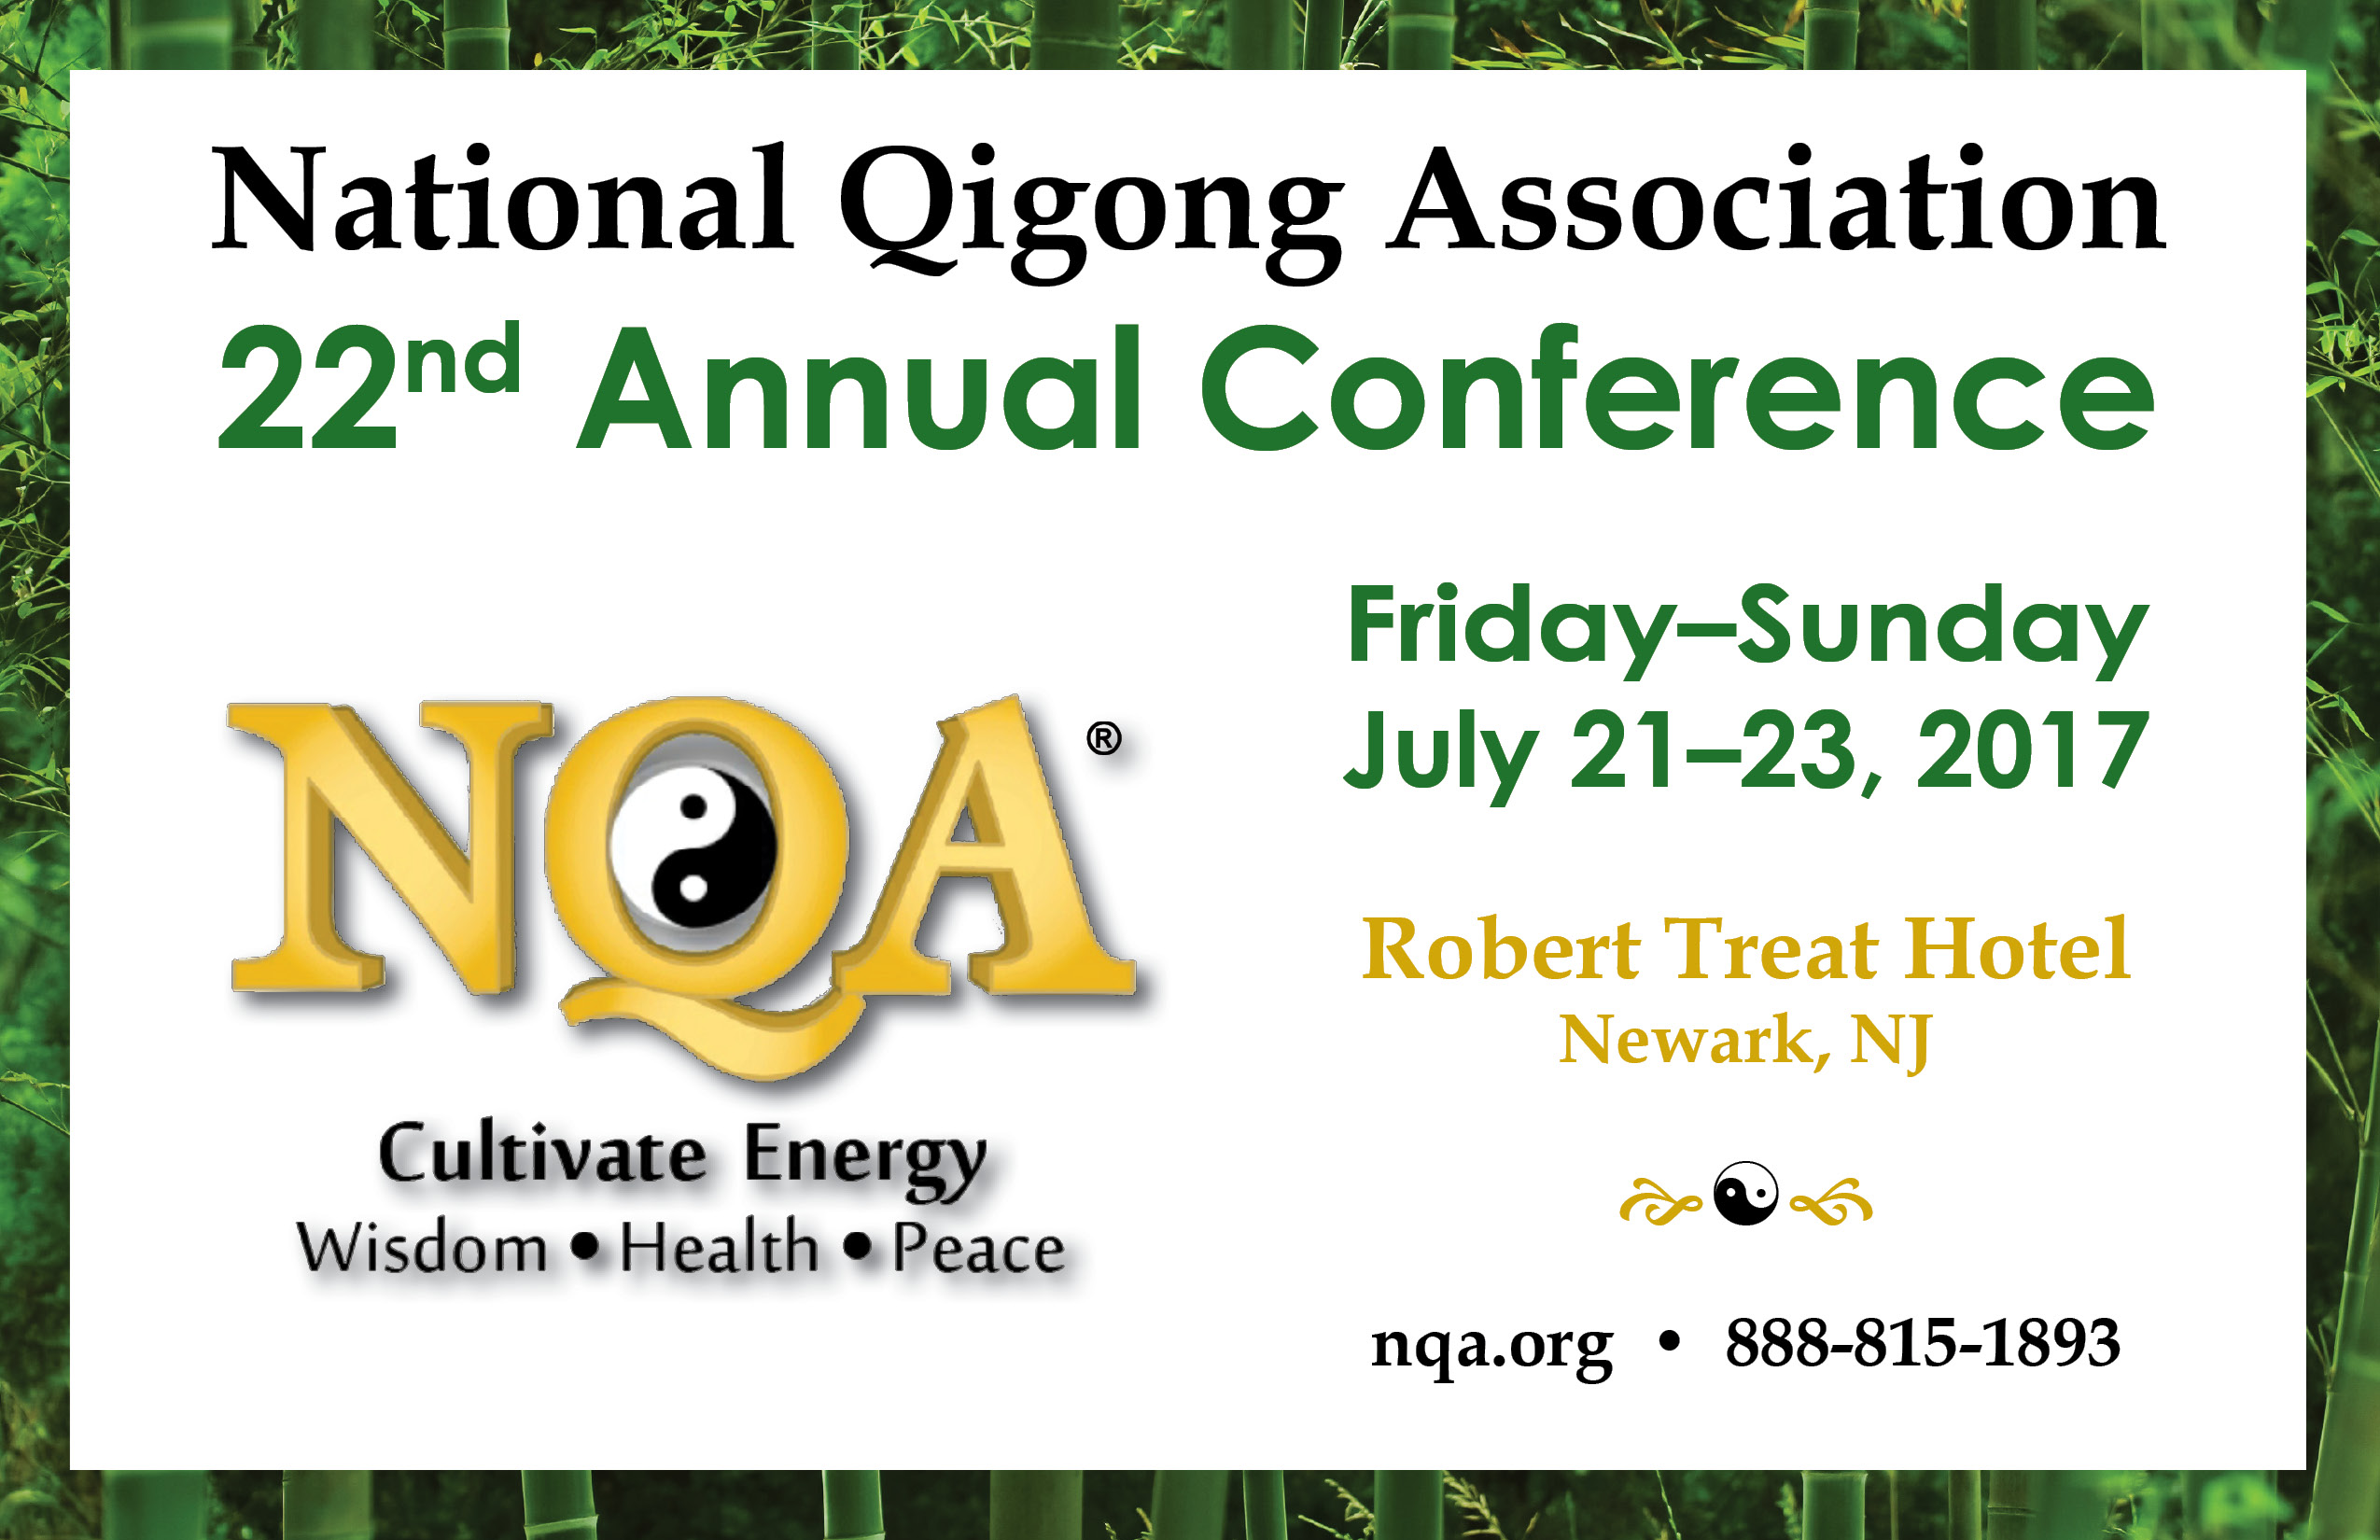 2017 National Qigong Association Conference